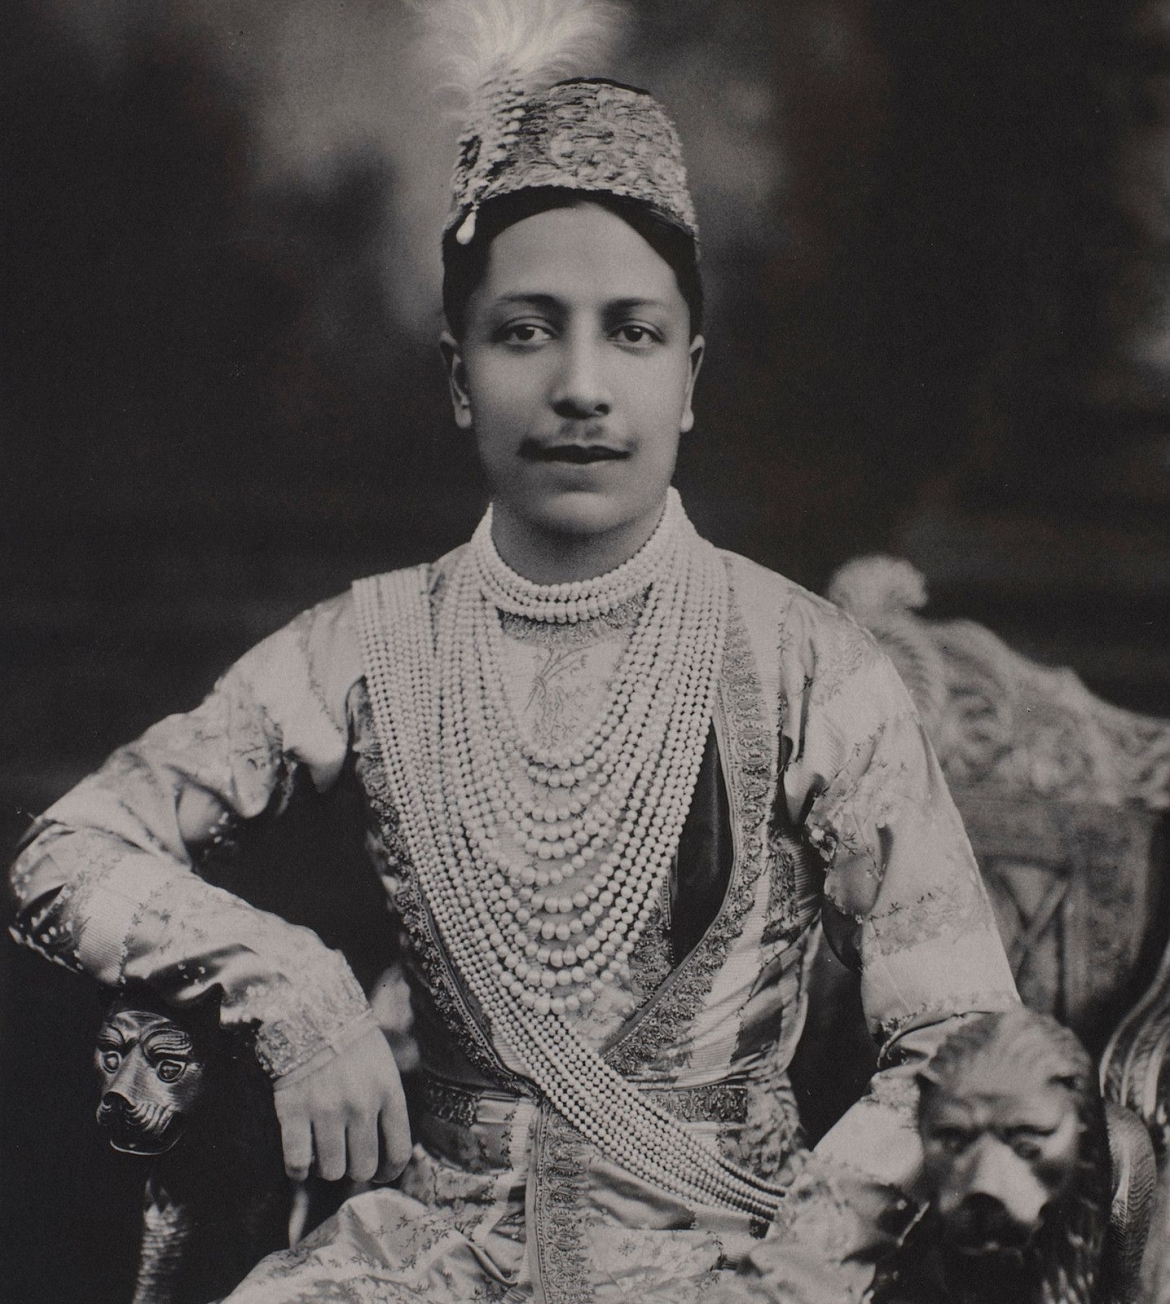 Nawab Hamid Ali Khan wearing the famous Rampur pearls